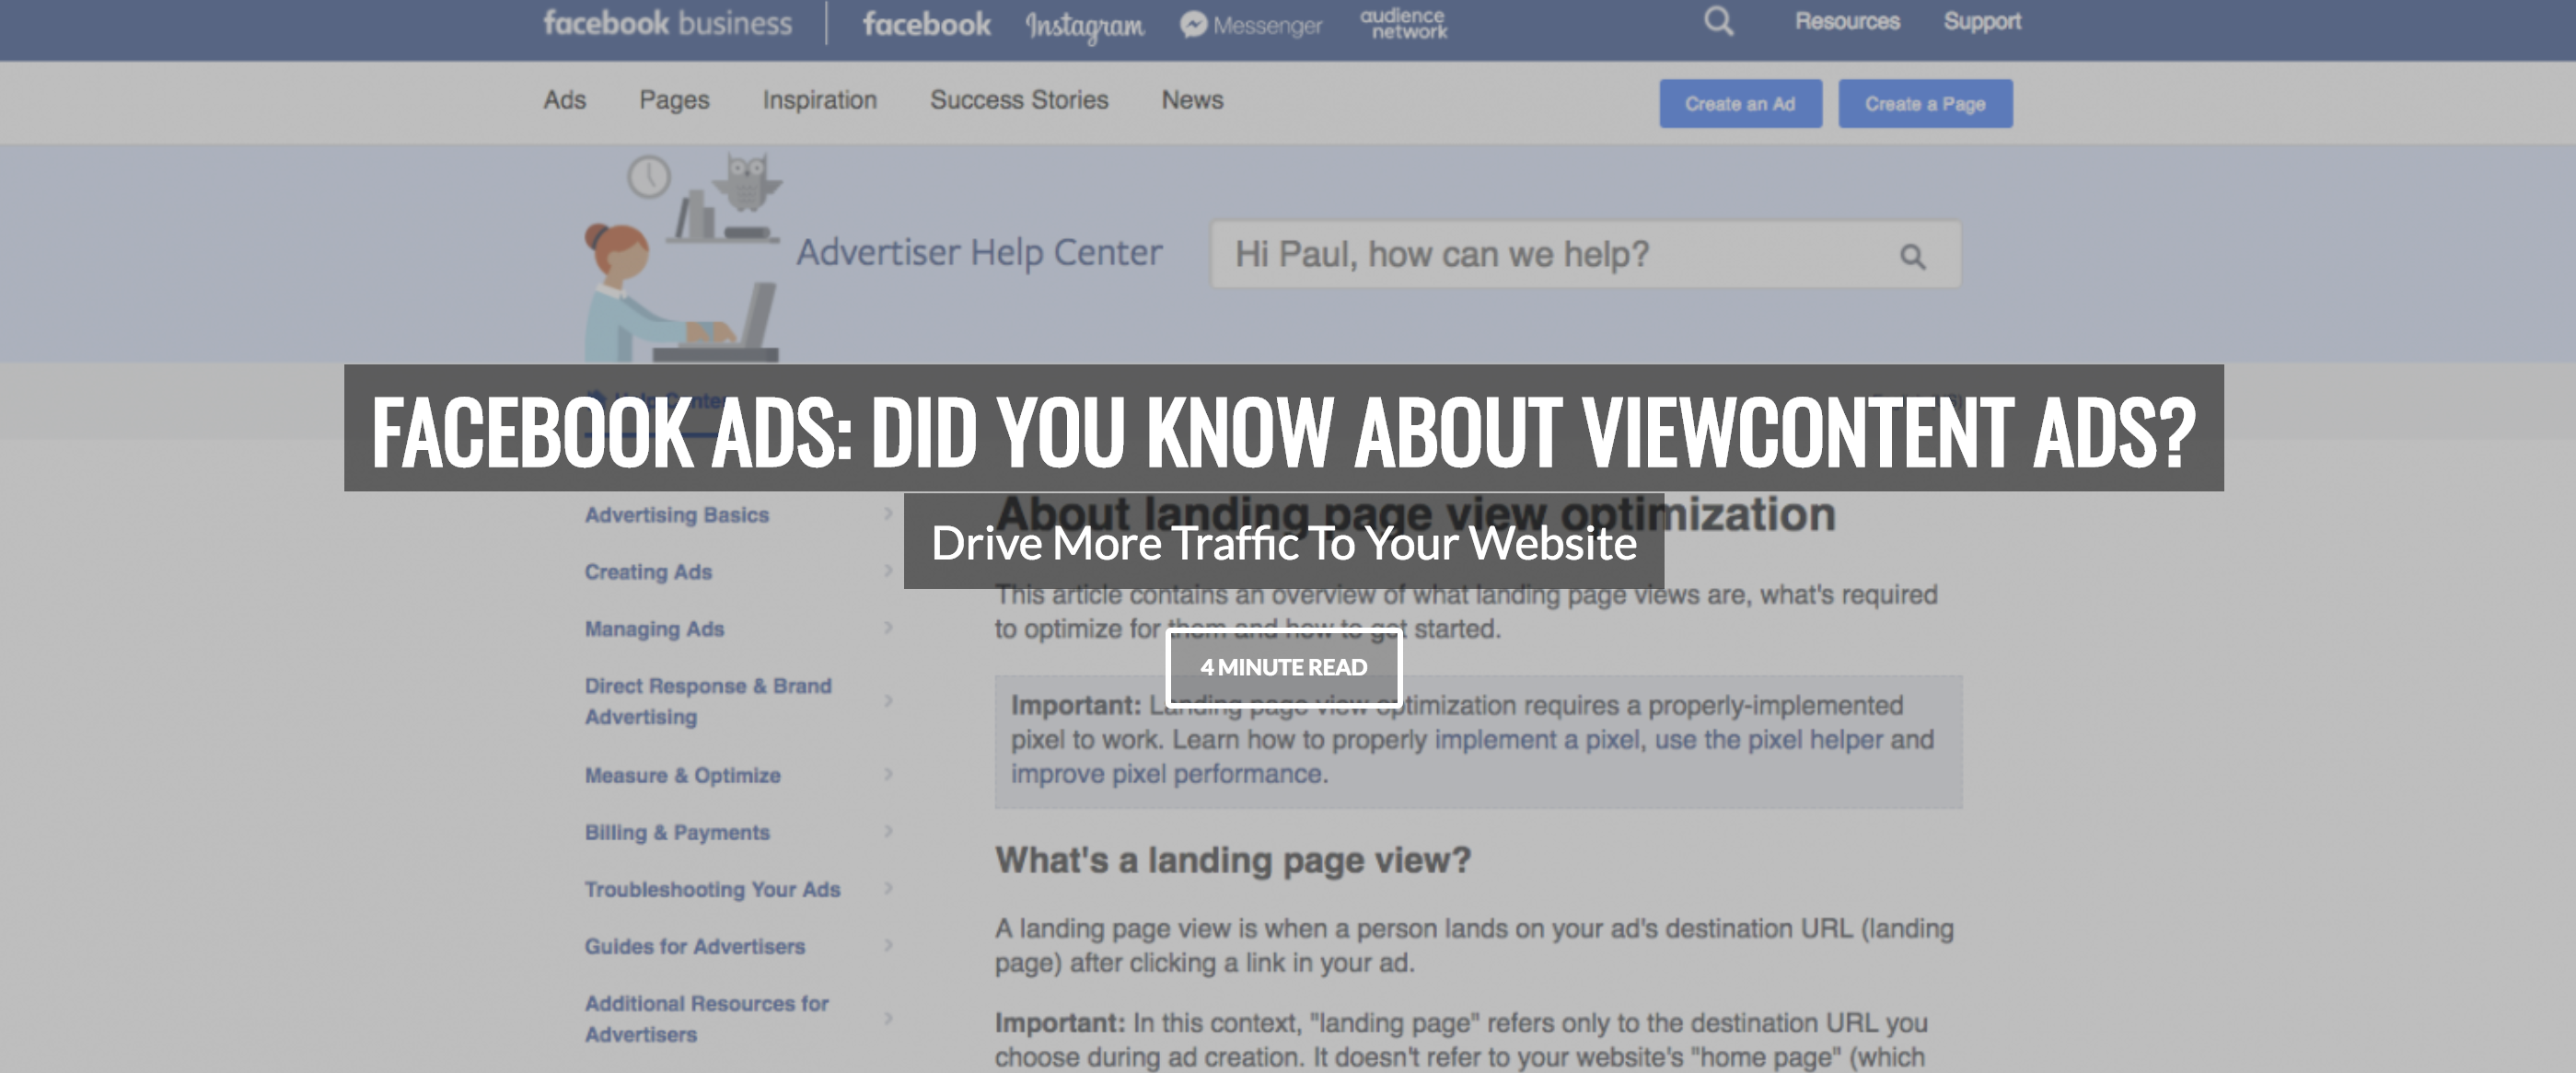 Drive More Traffic To Your Website Using Facebook Ads